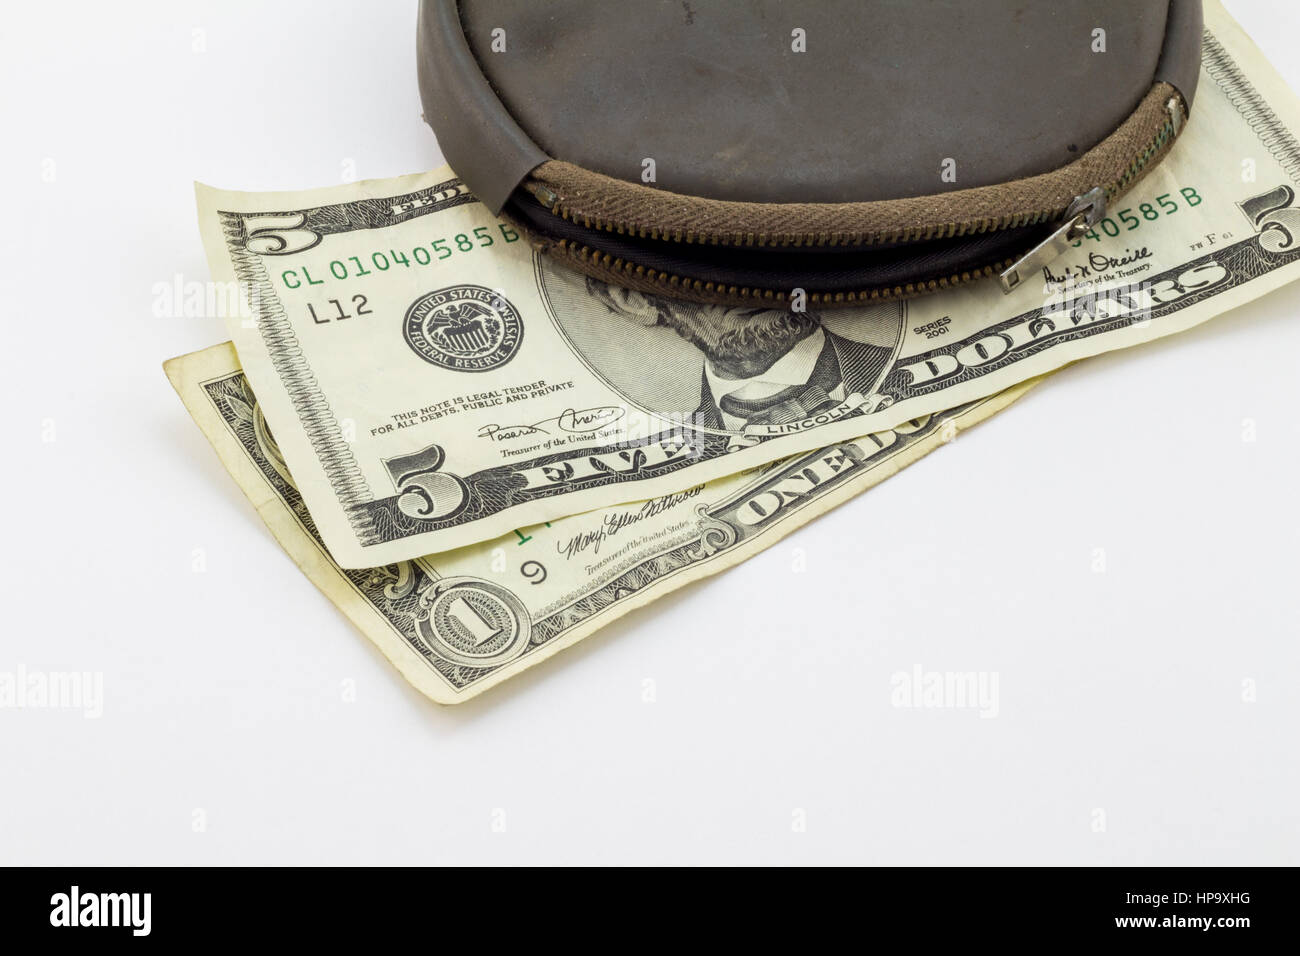 Worn empty wallet/purse with Five Dollar and One Dollar bills on white background - Conceptual image - poverty in - Stock Image